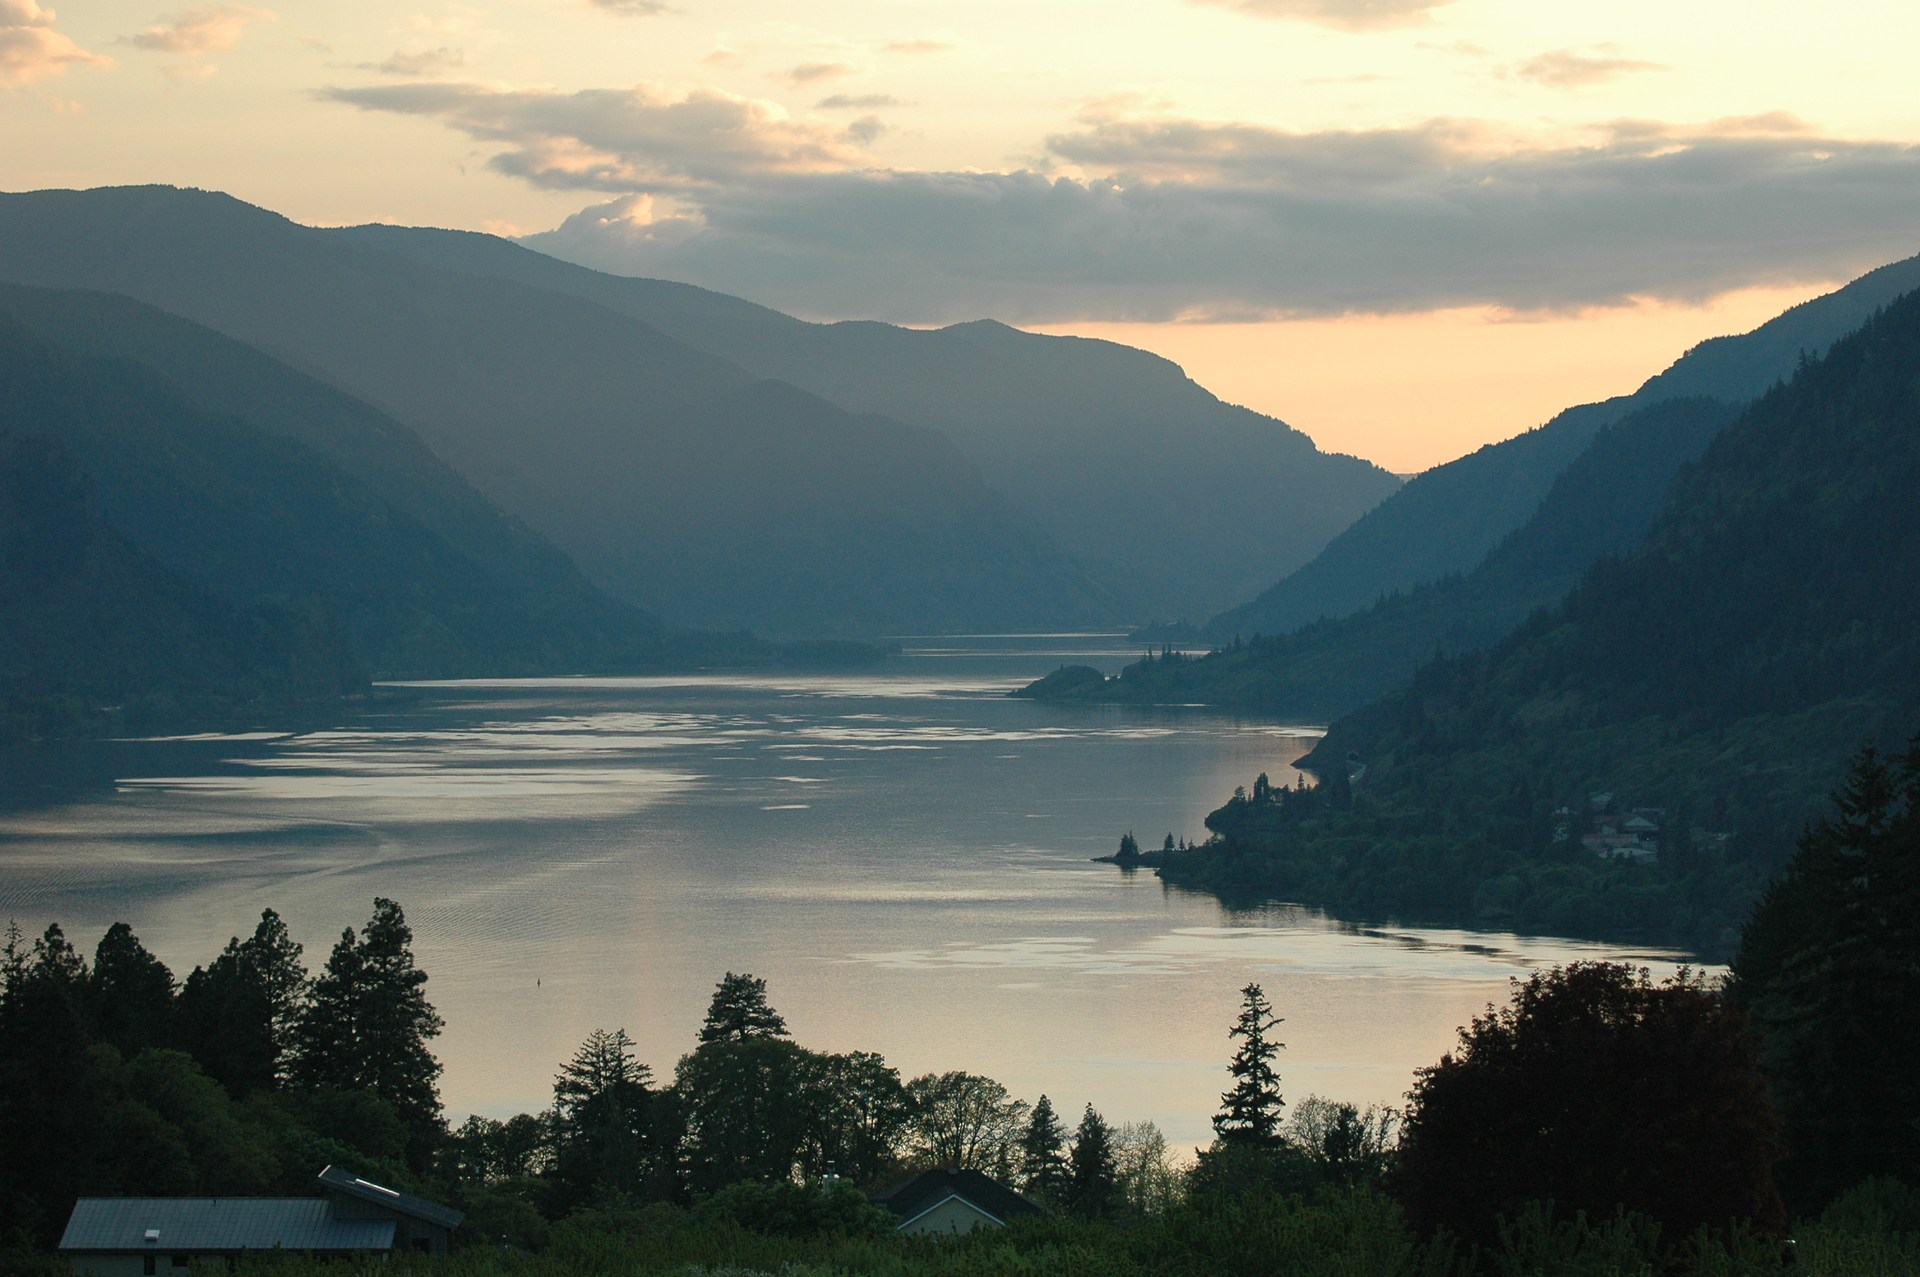 Photo of the Columbia River Gorge from White Salmon, WA.